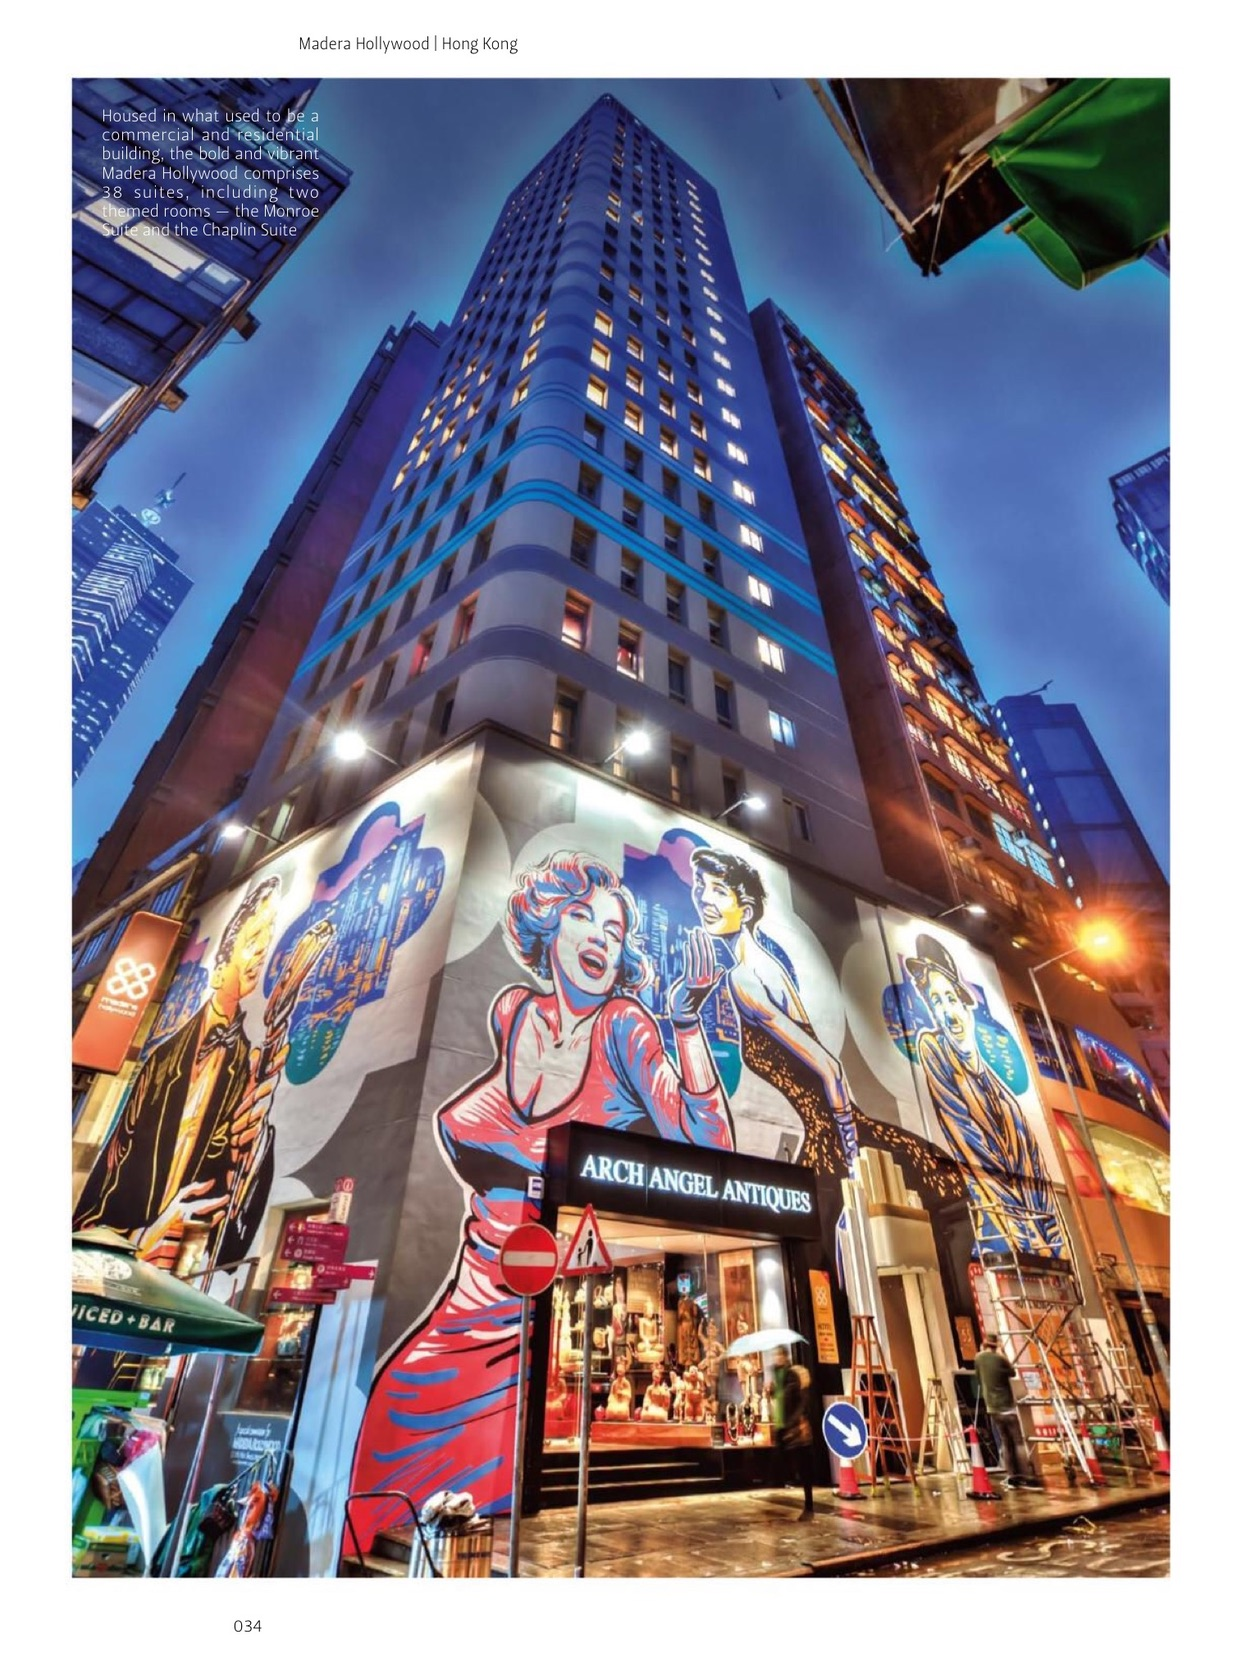 Rob's biggest (literally) project has been the mural on the facade of the Madera Hollywood, Hong Kong